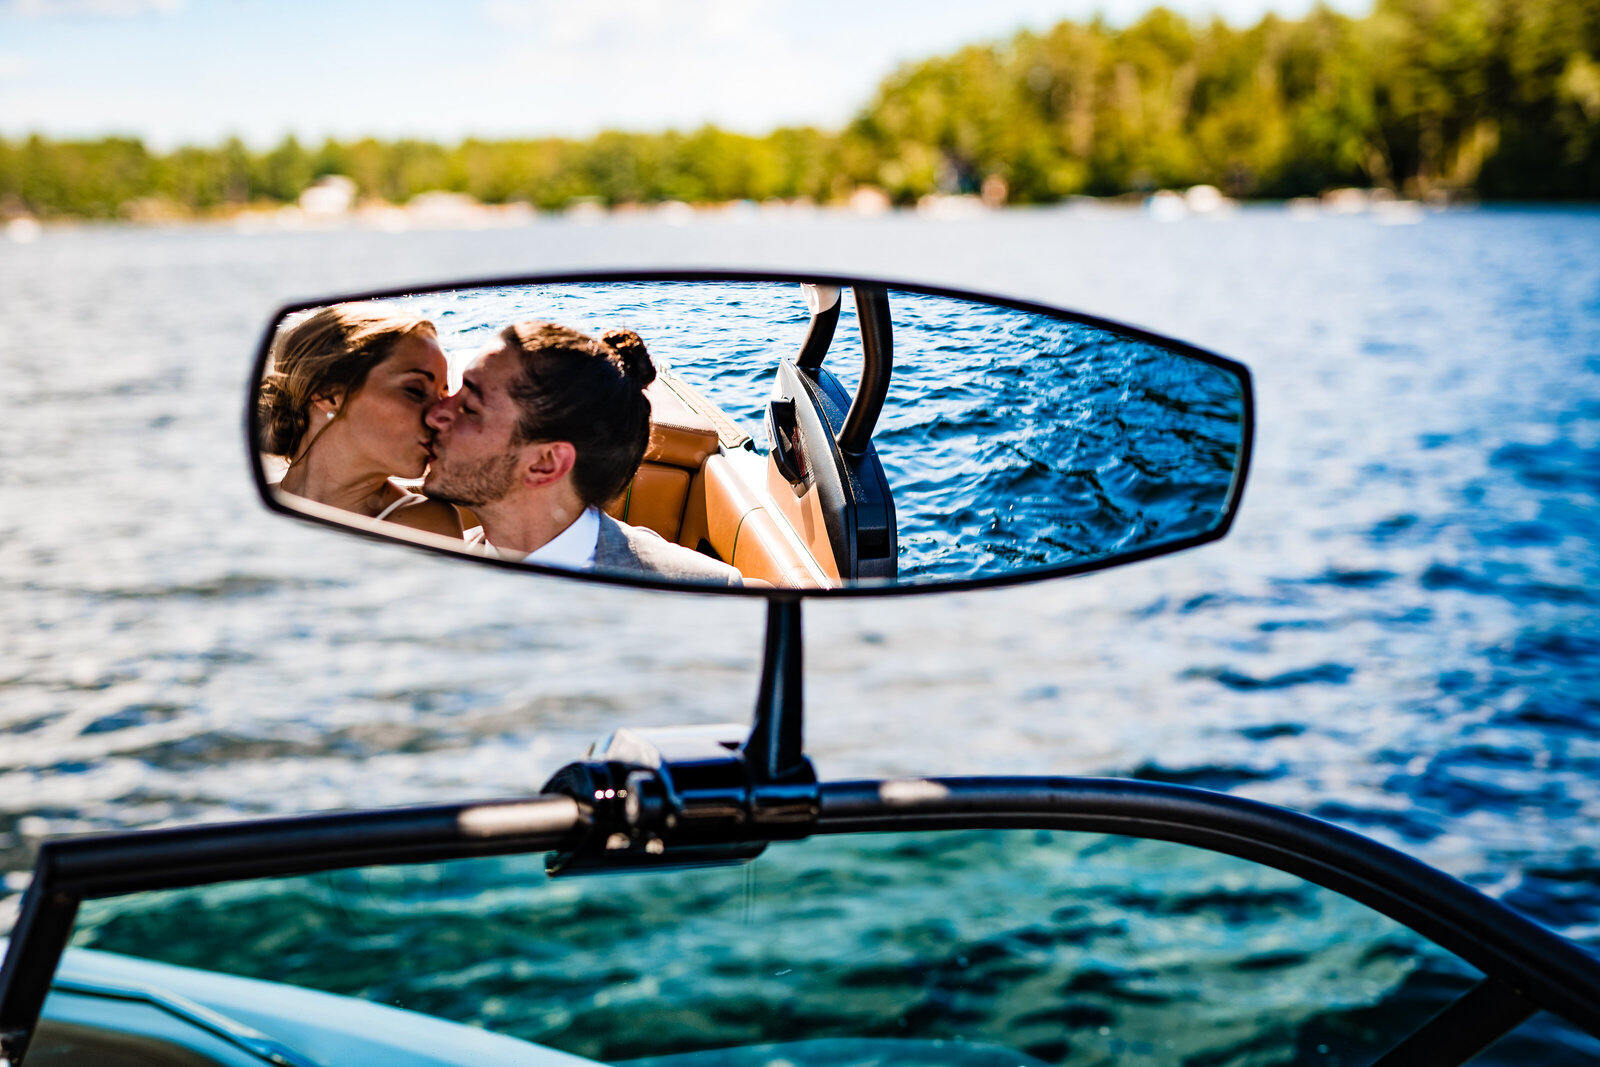 Intimate-Lake-Wedding-summer-destination-elopement-vermont-wedding-photographer-by-andy-madea-29 copy